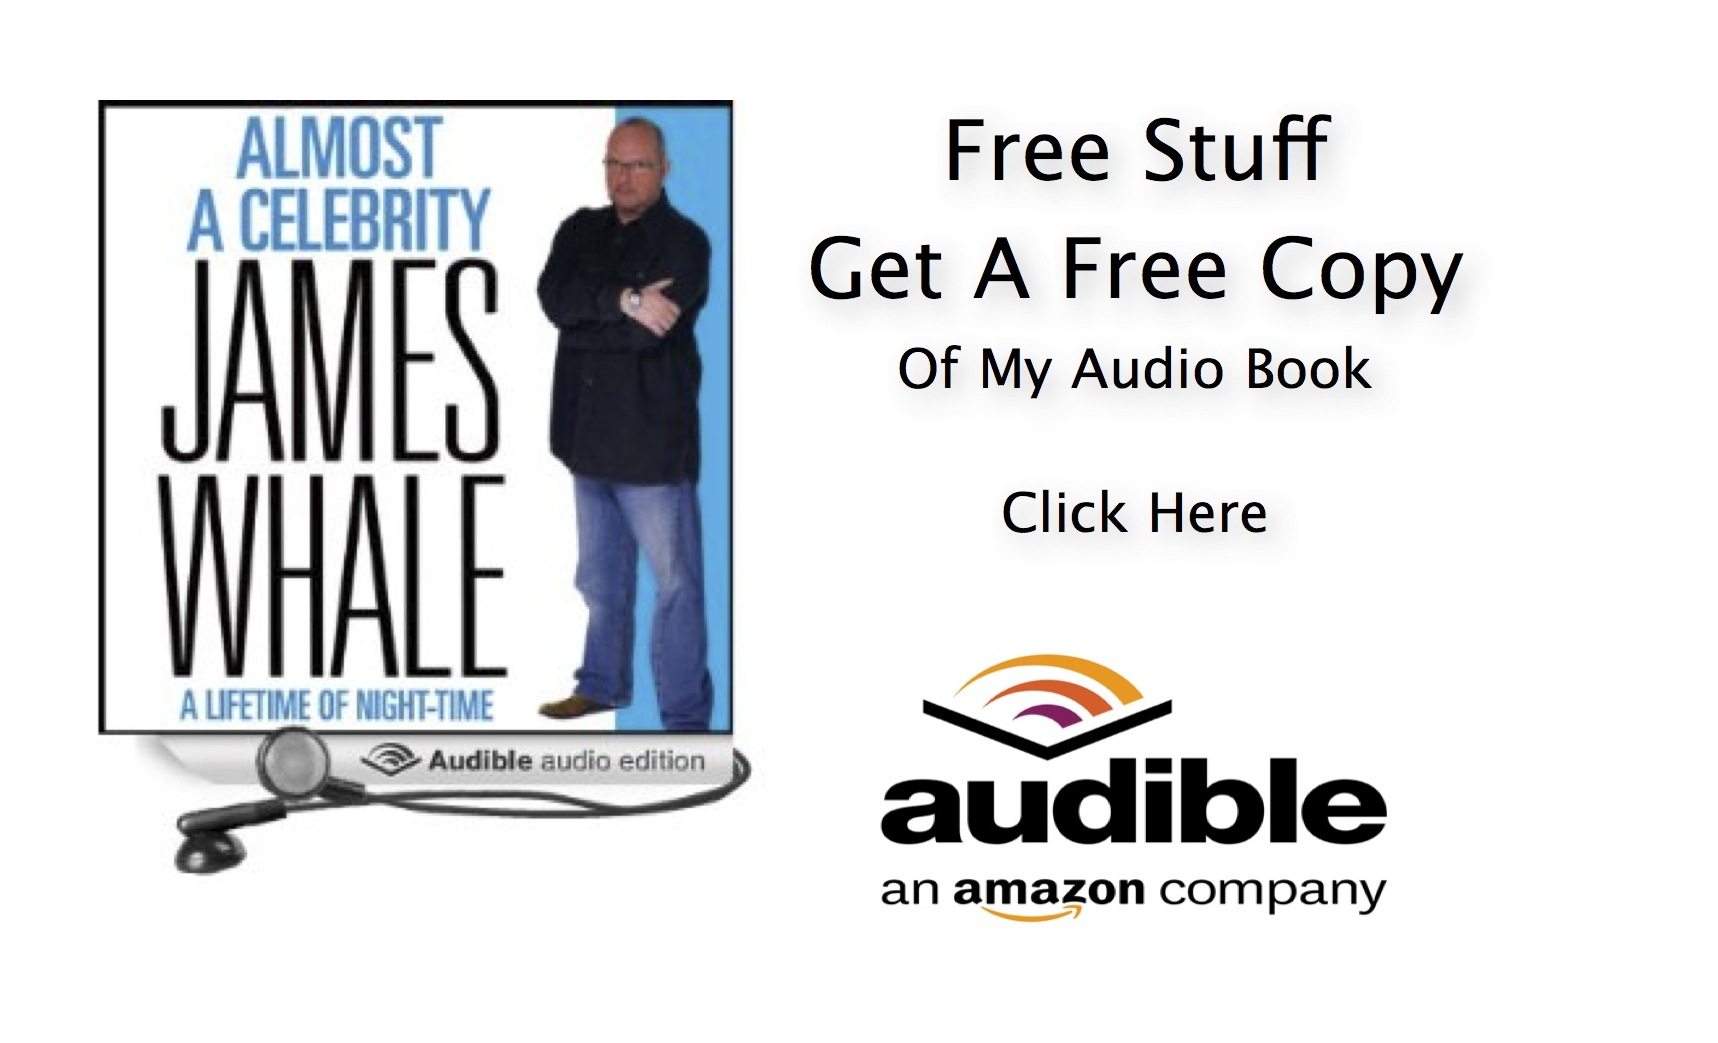 James Whale Audio Book